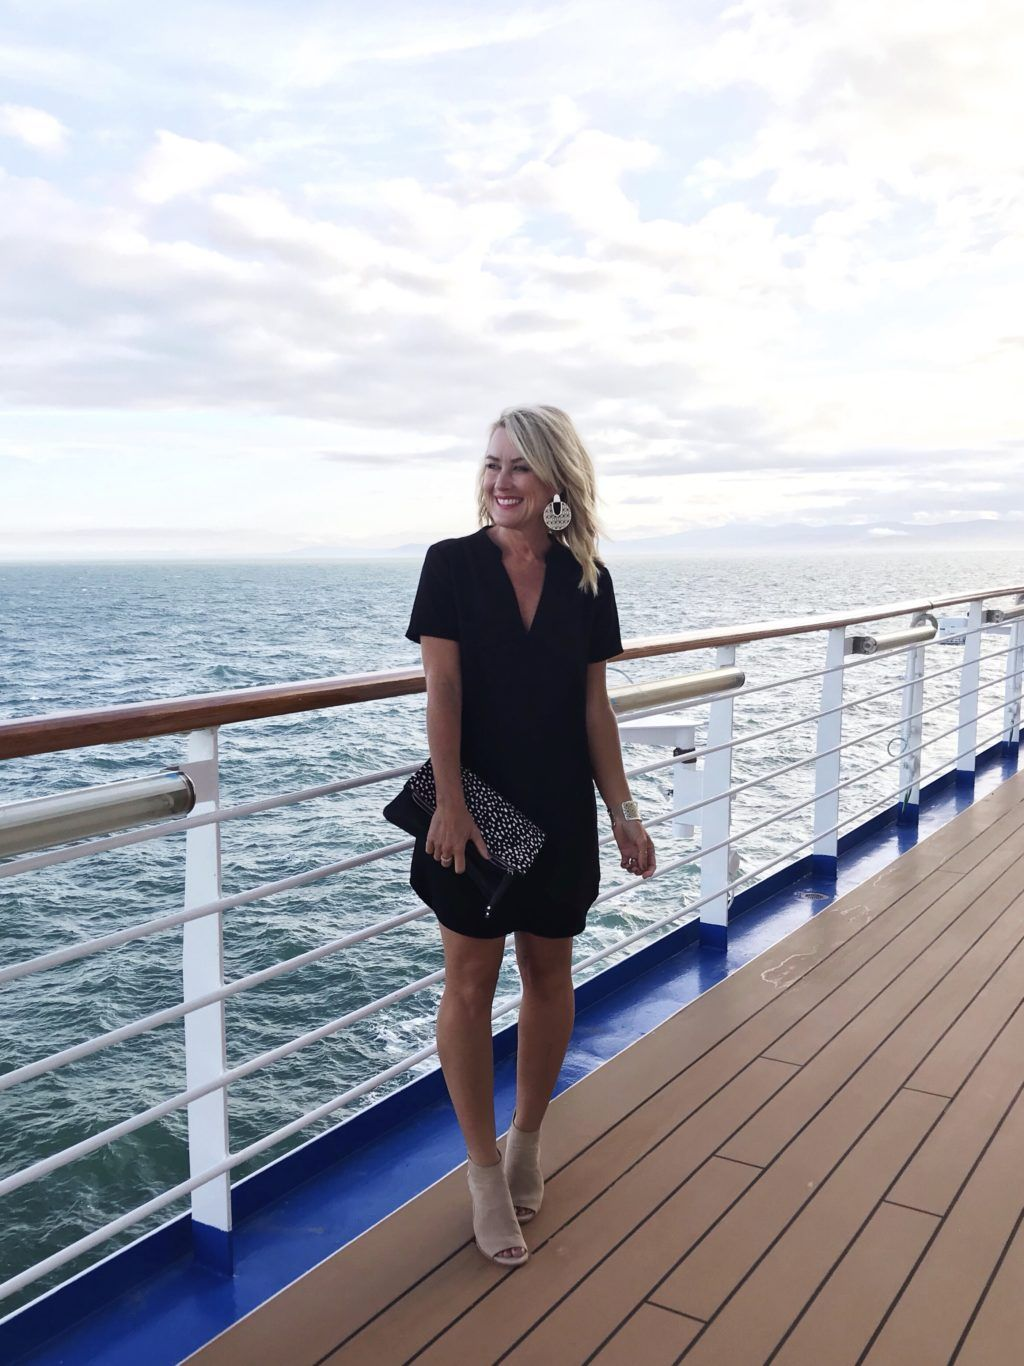 British Isles Cruise | The Royal Princess | Week 1 Travel Diary